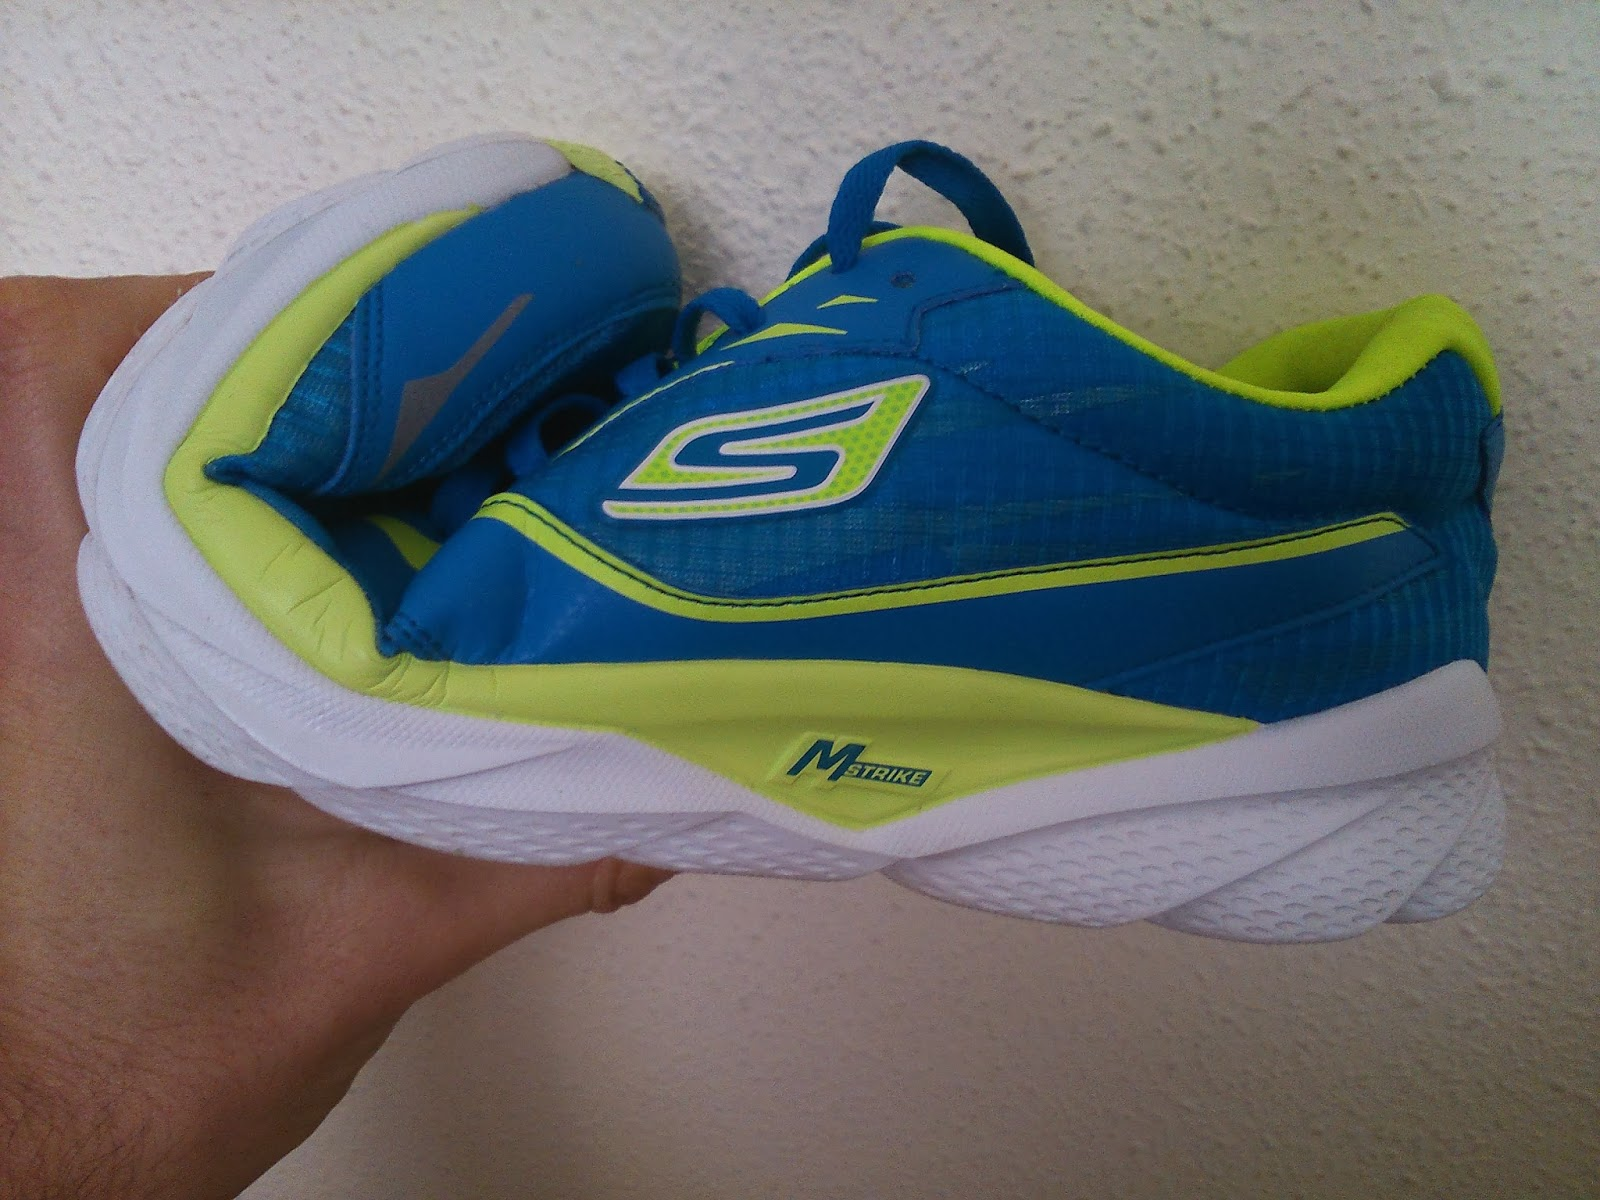 skechers gorun ride 3 minimal running